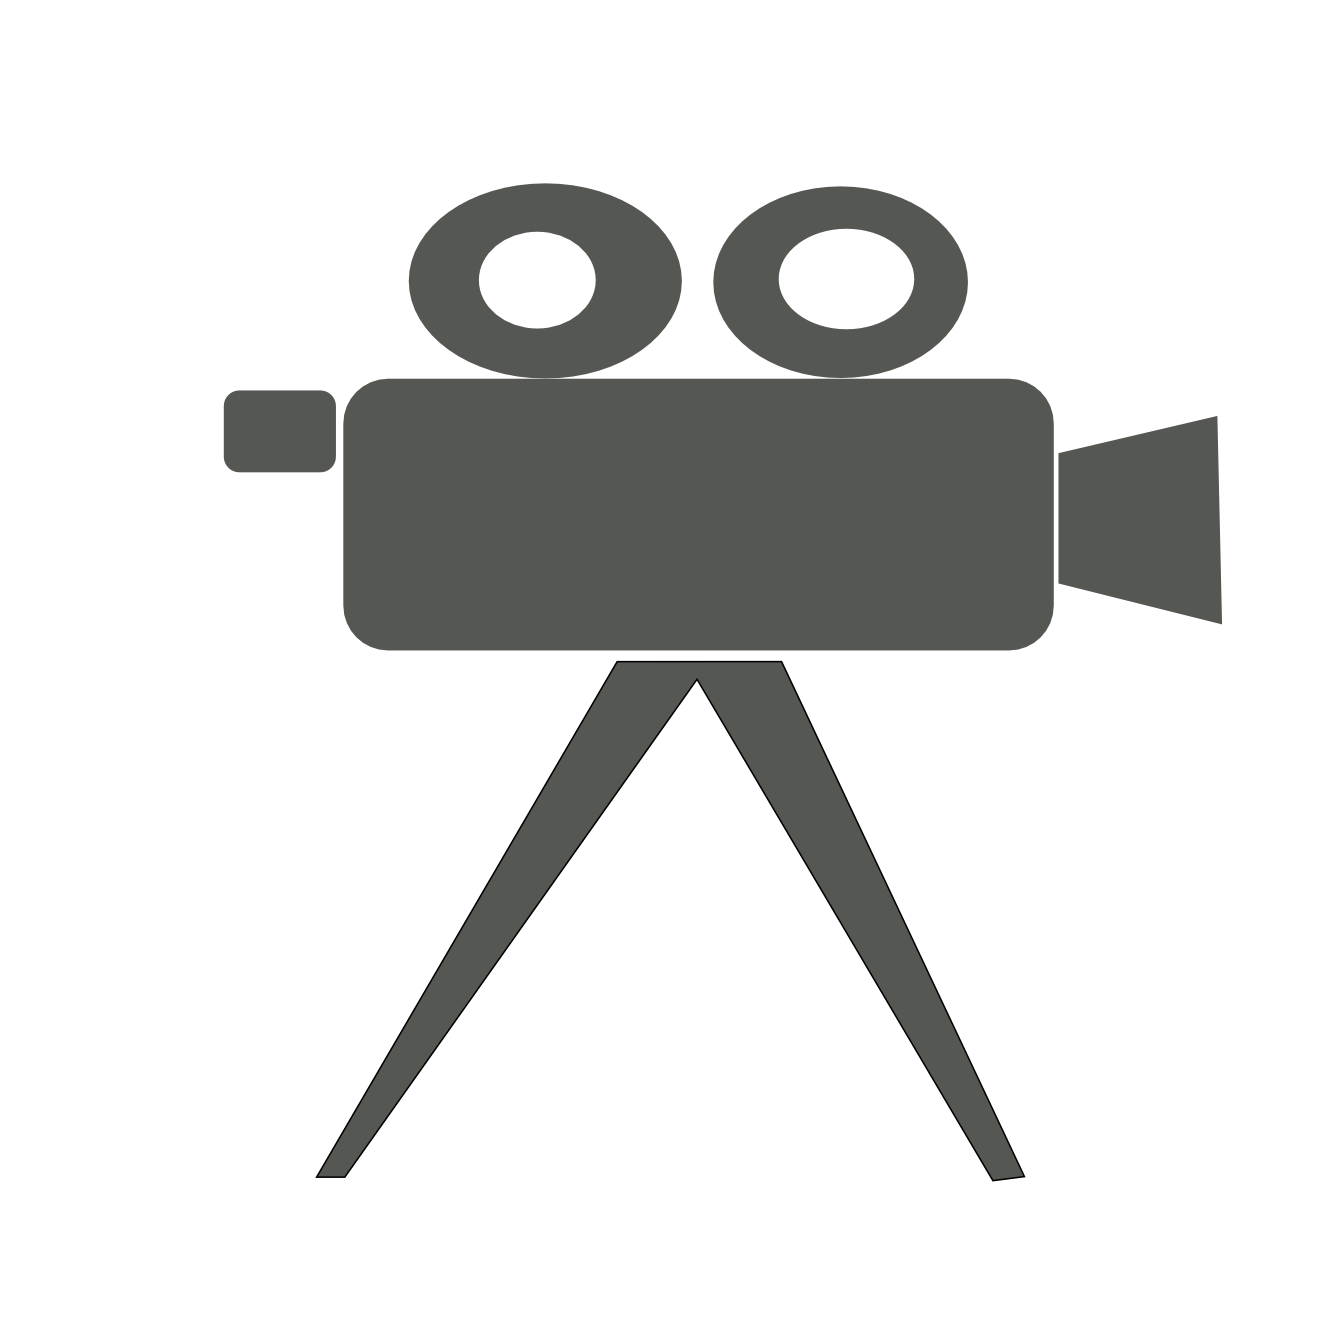 Vectors Video Camera On Tripod Download Icon Free image #39010